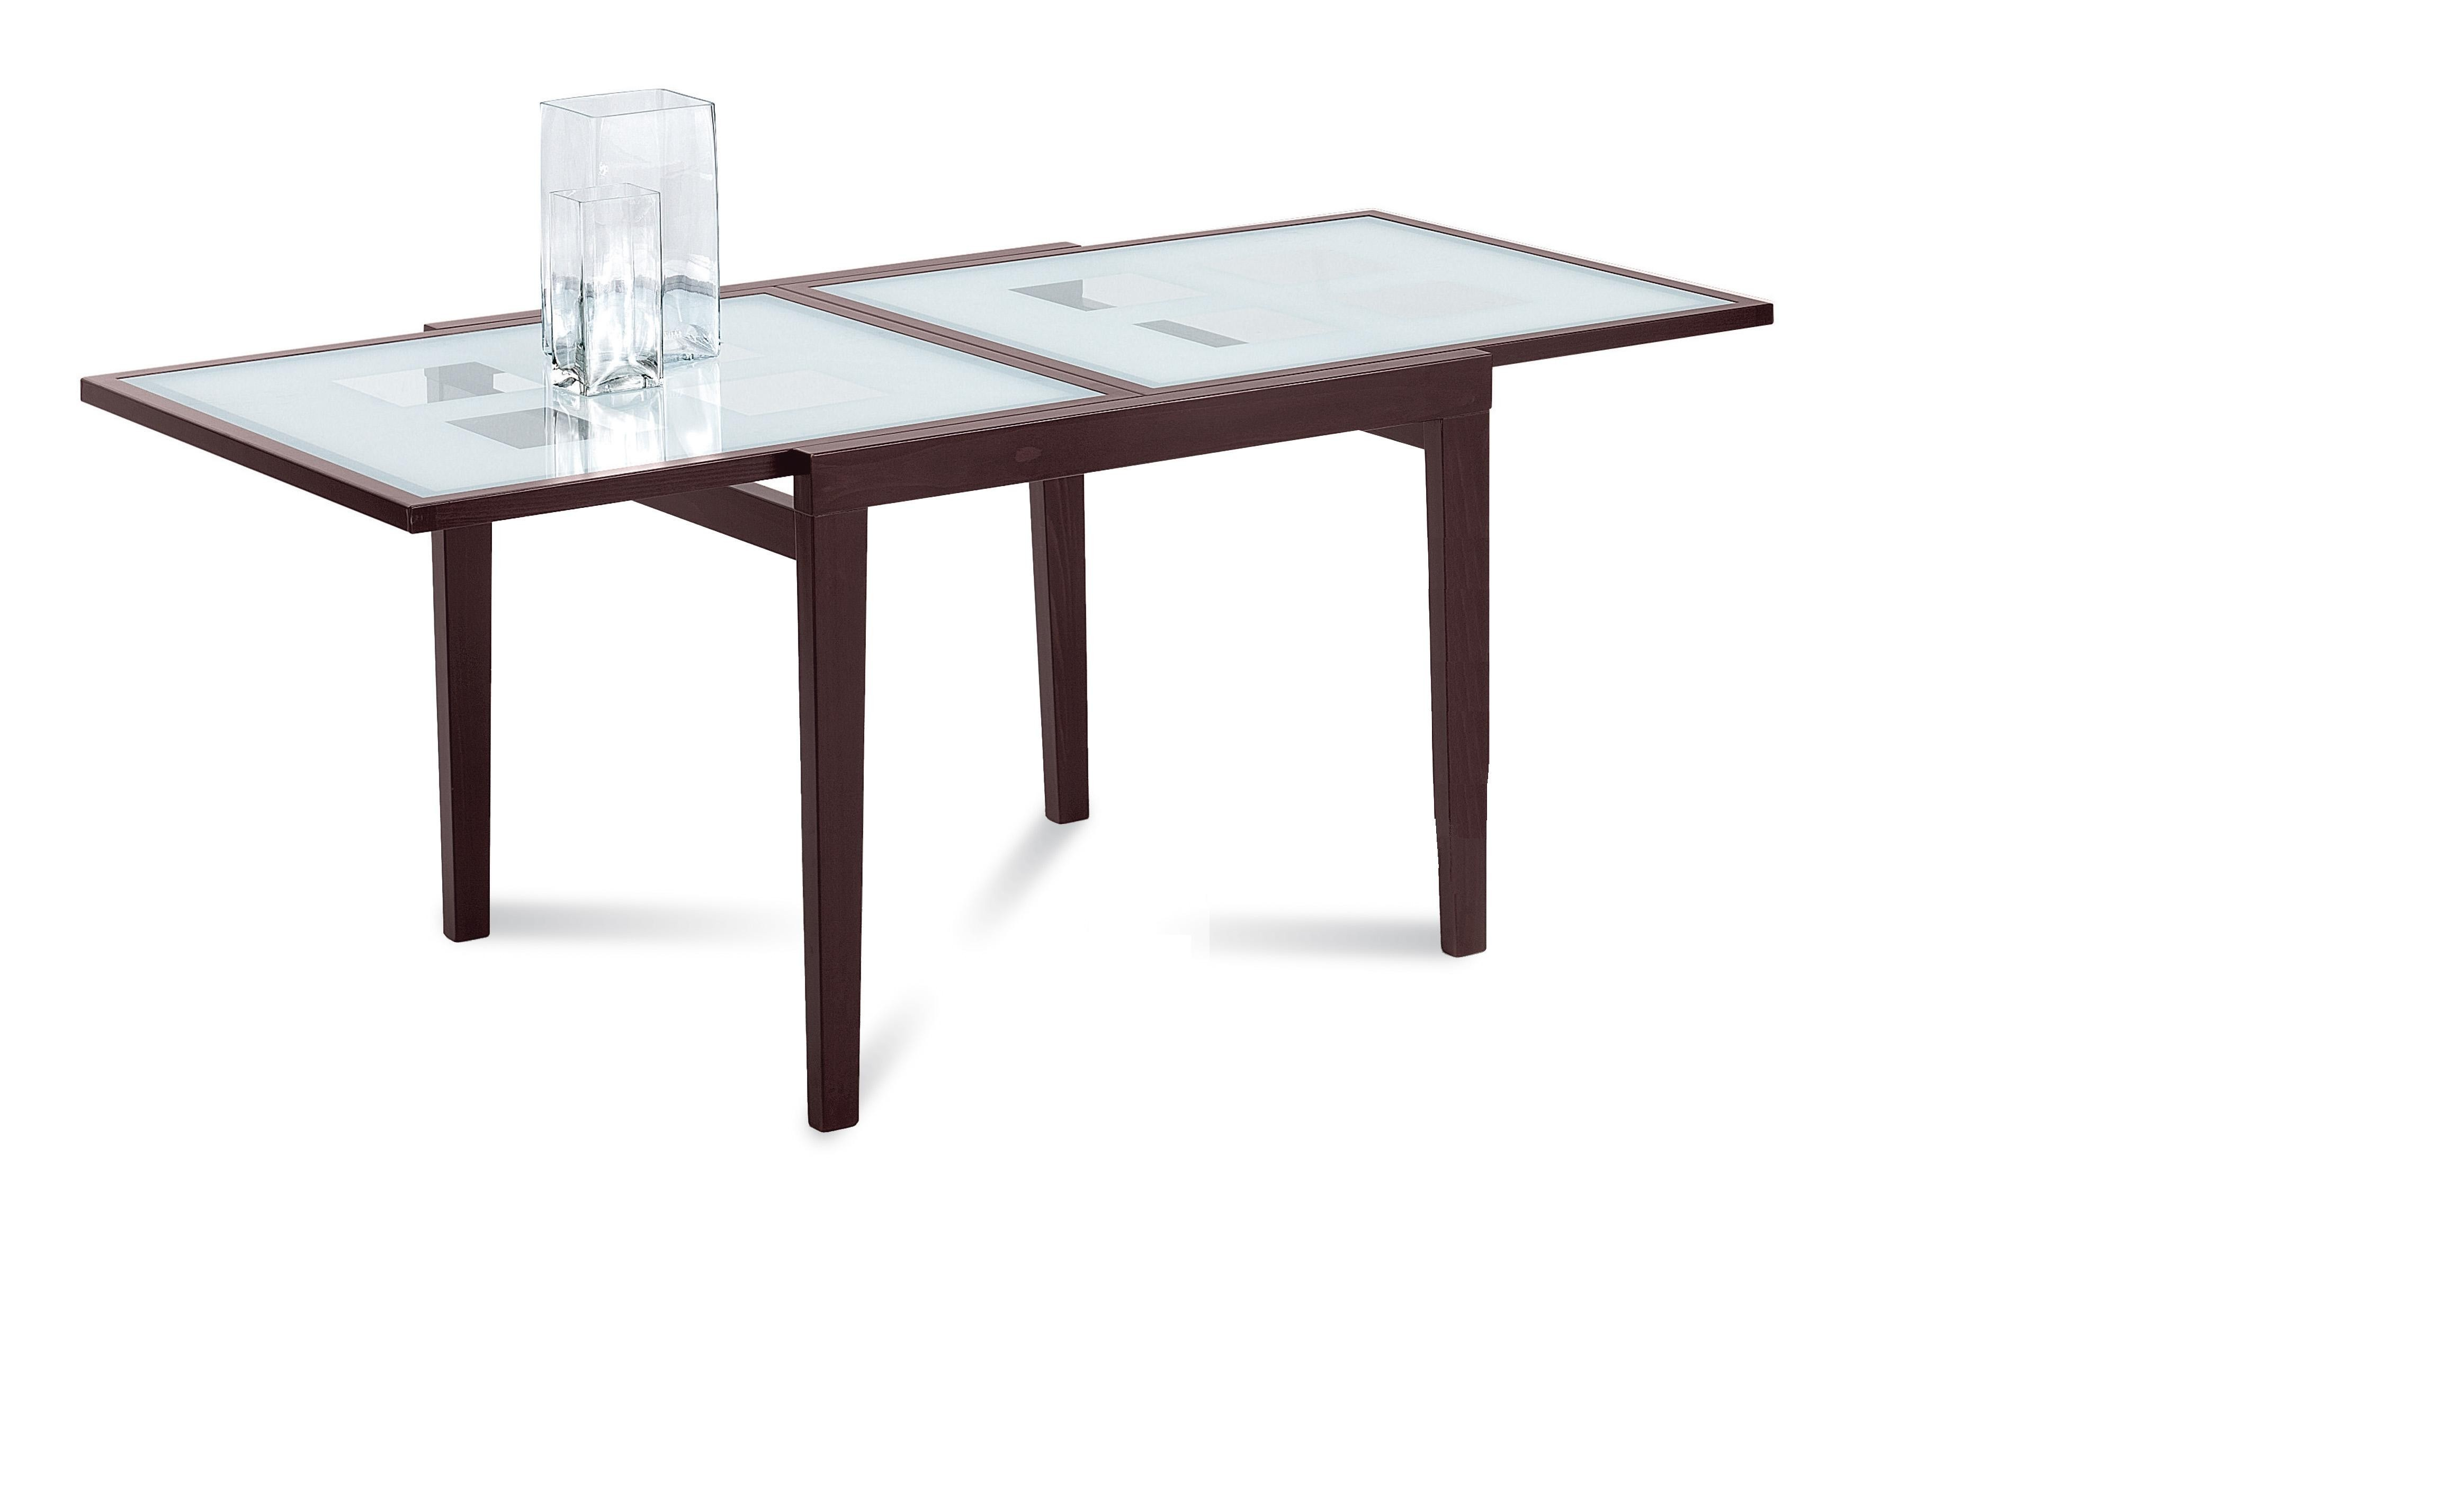 DomItalia Poker 120 Extendible Dining Table In Walnut